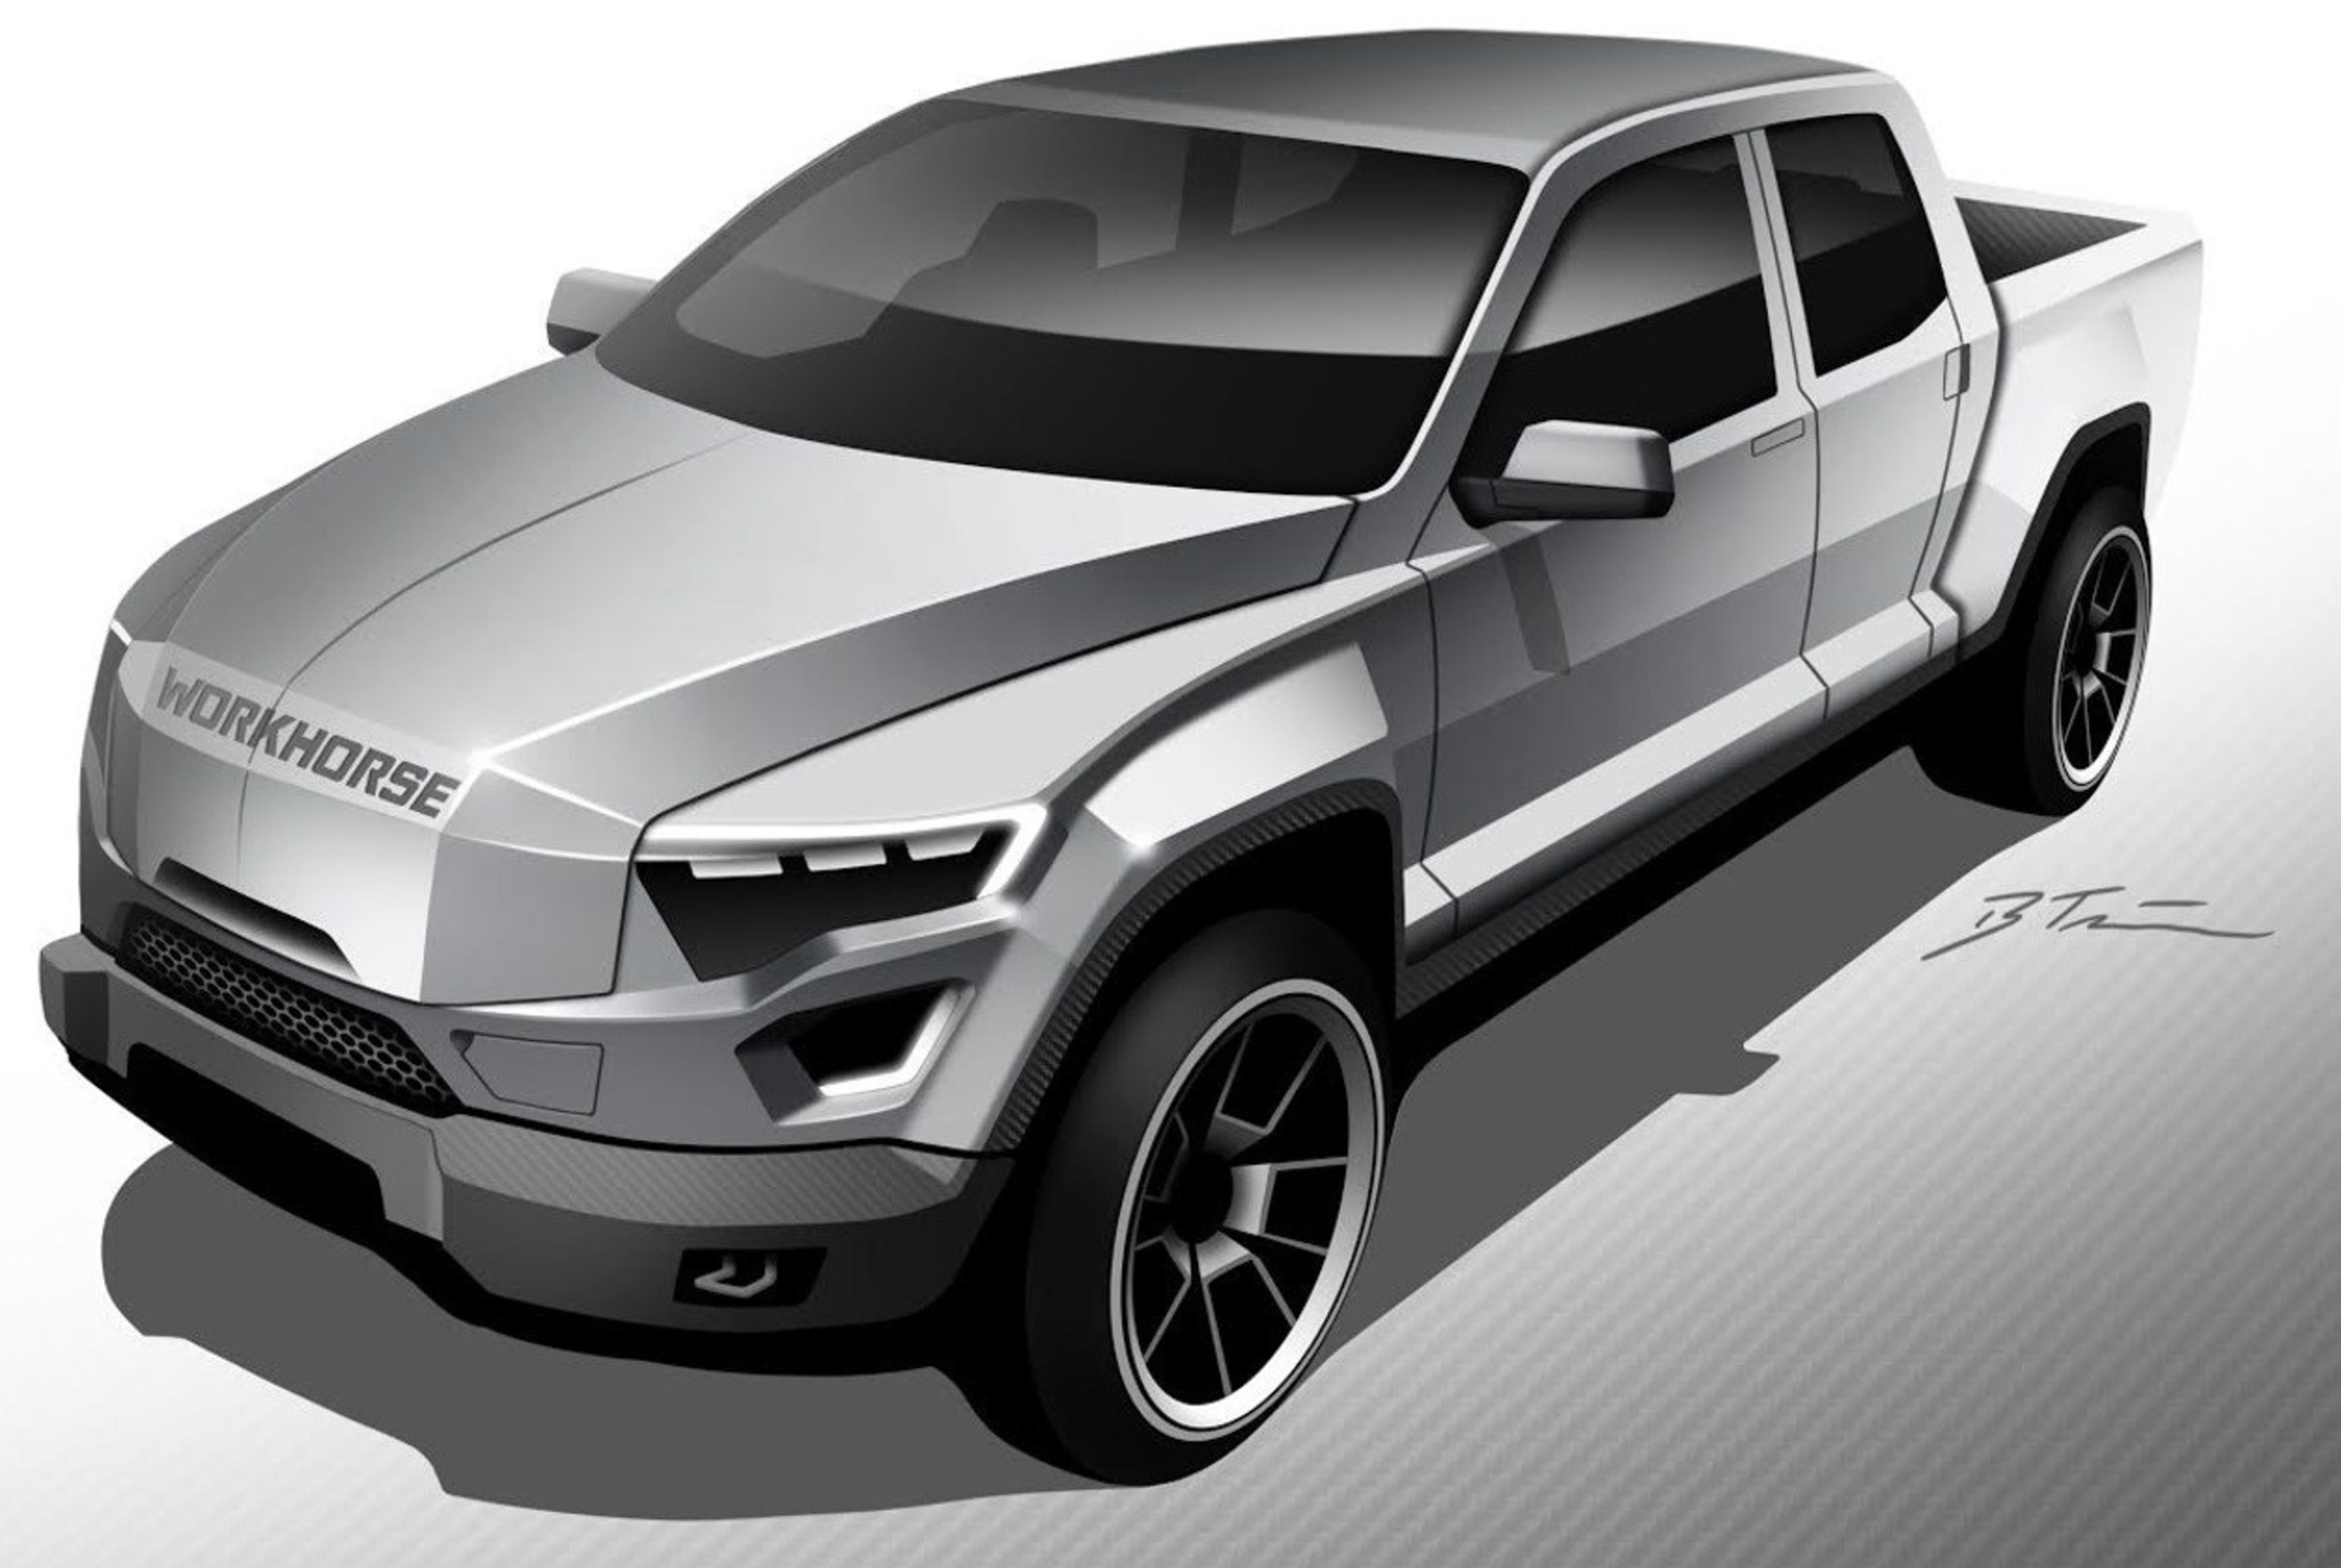 Workhorse Group Inc. Commences Development of Plug-In Electric Pickup Truck with Range Extender For Fleets